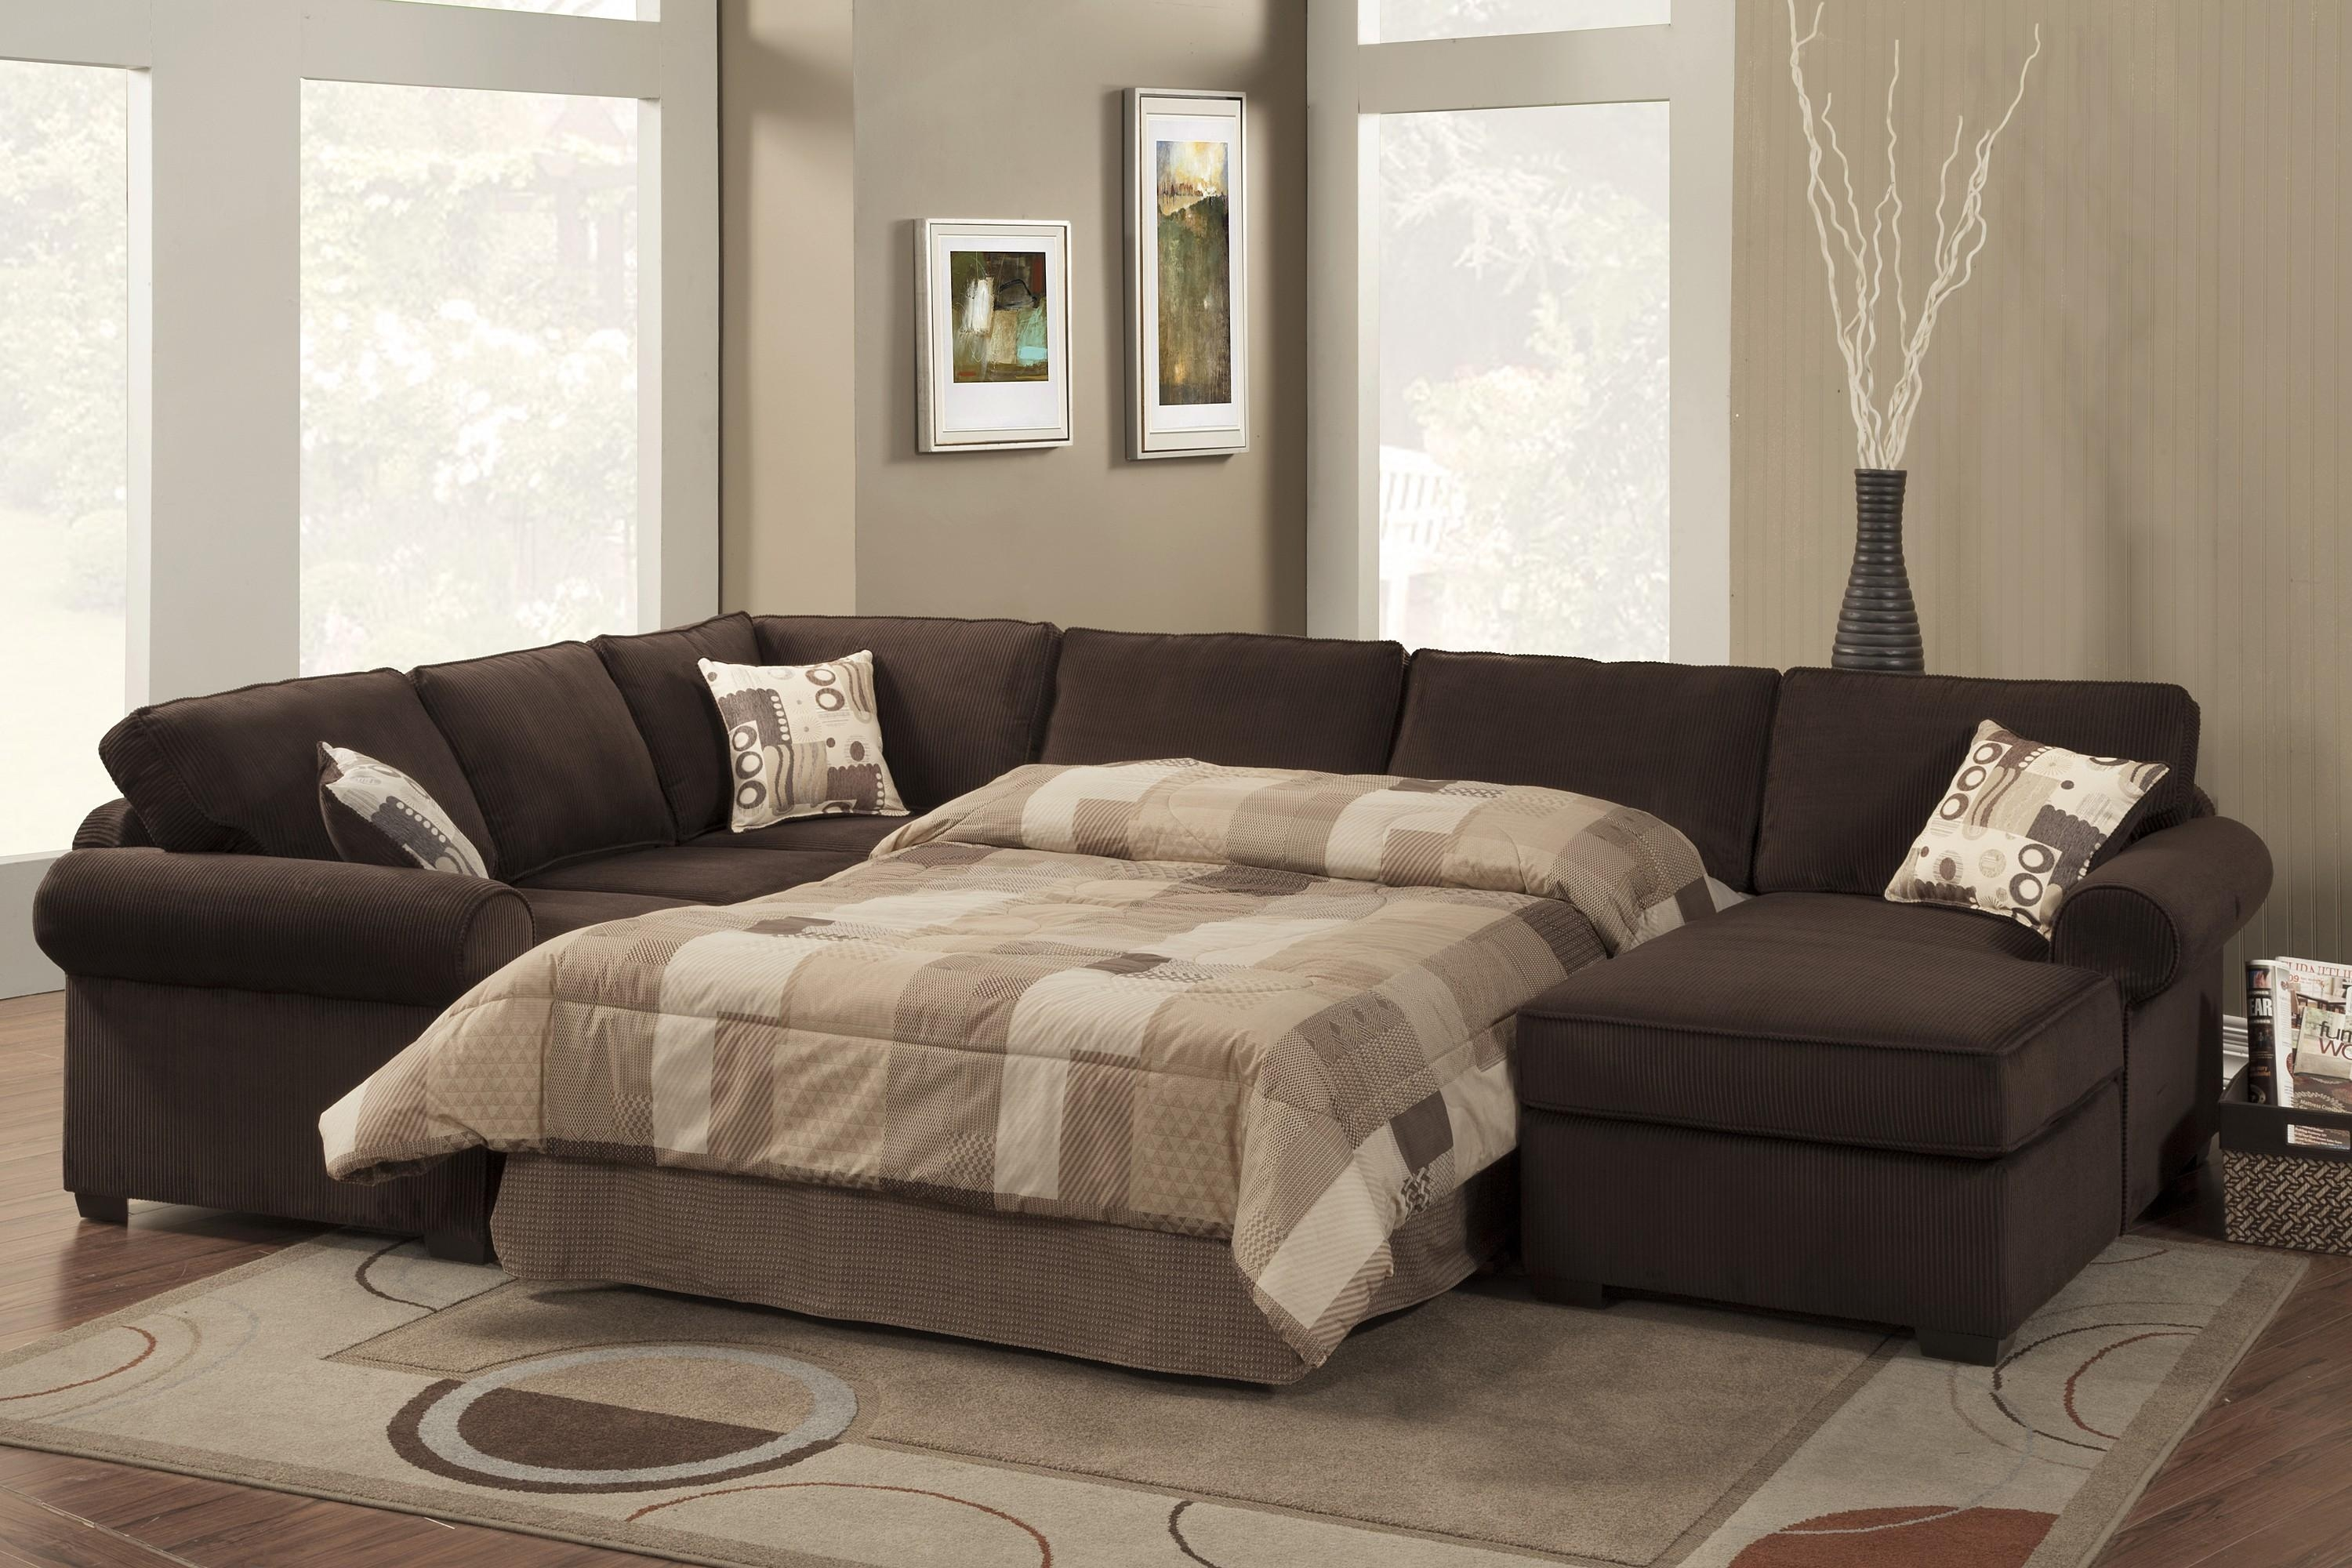 Furniture: Modern And Contemporary Sofa Sectionals For Living Room Regarding Red Sectional Sleeper Sofas (View 11 of 22)